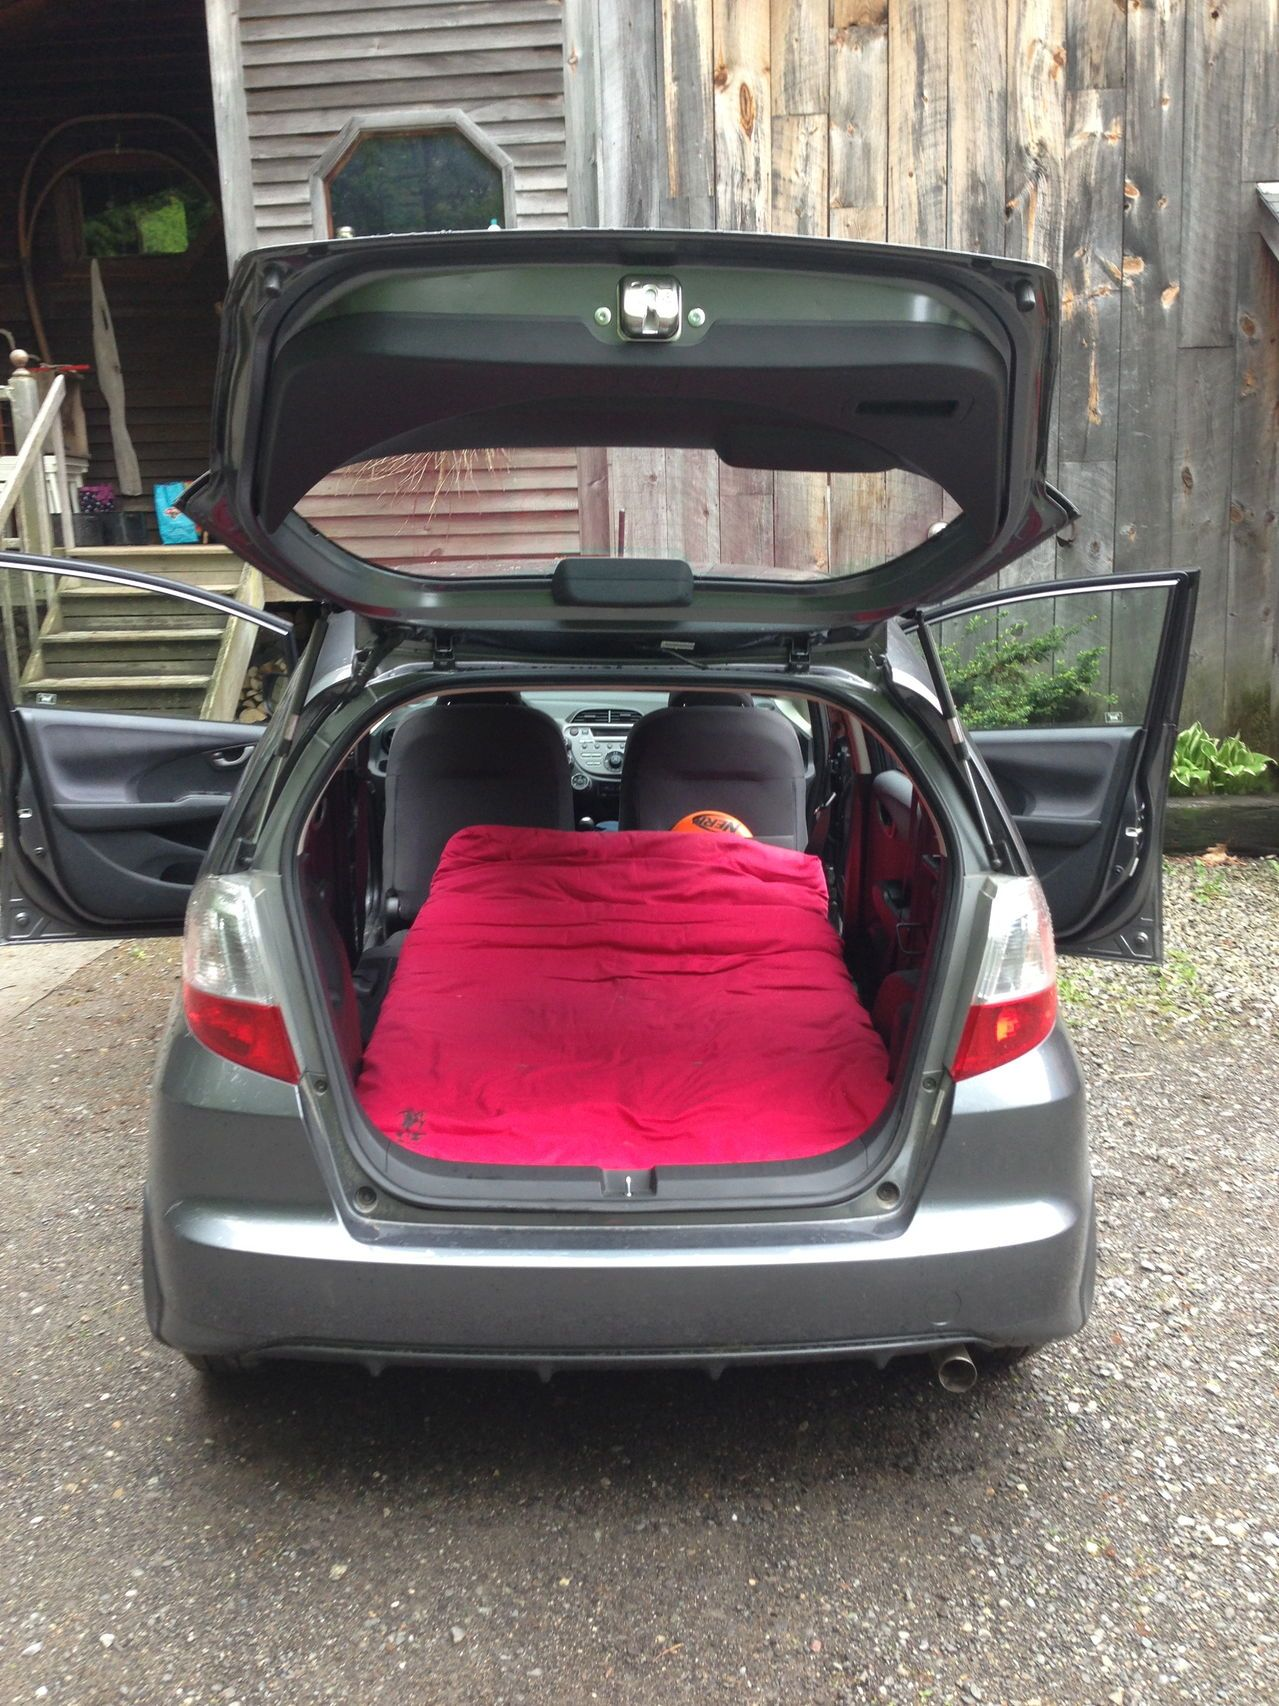 A journey towards camping in my '13 Fit - Unofficial Honda FIT Forums